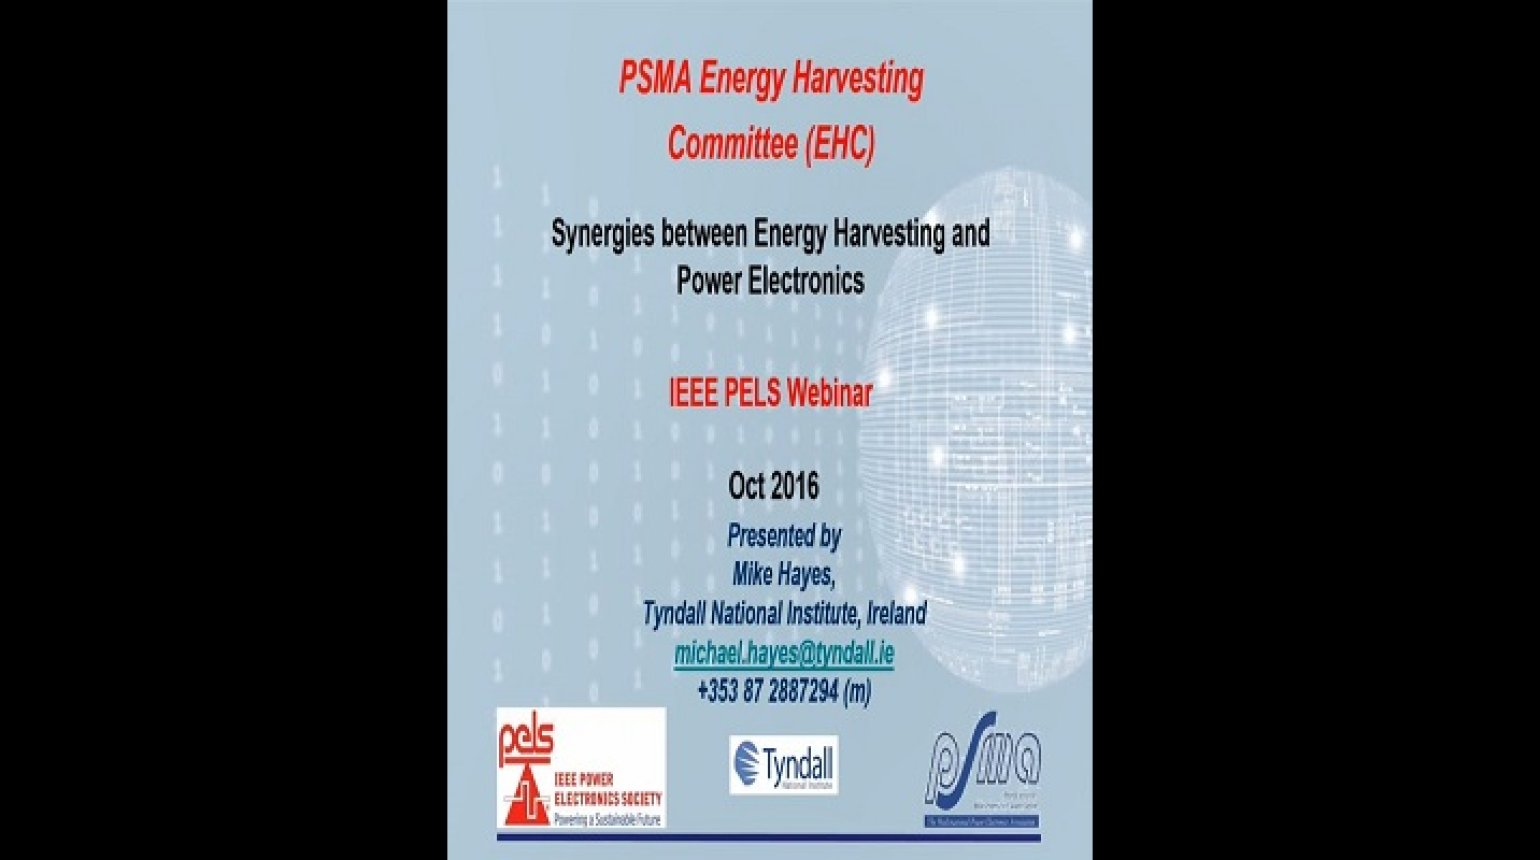 Synergies between energy harvesting and power electronics Video